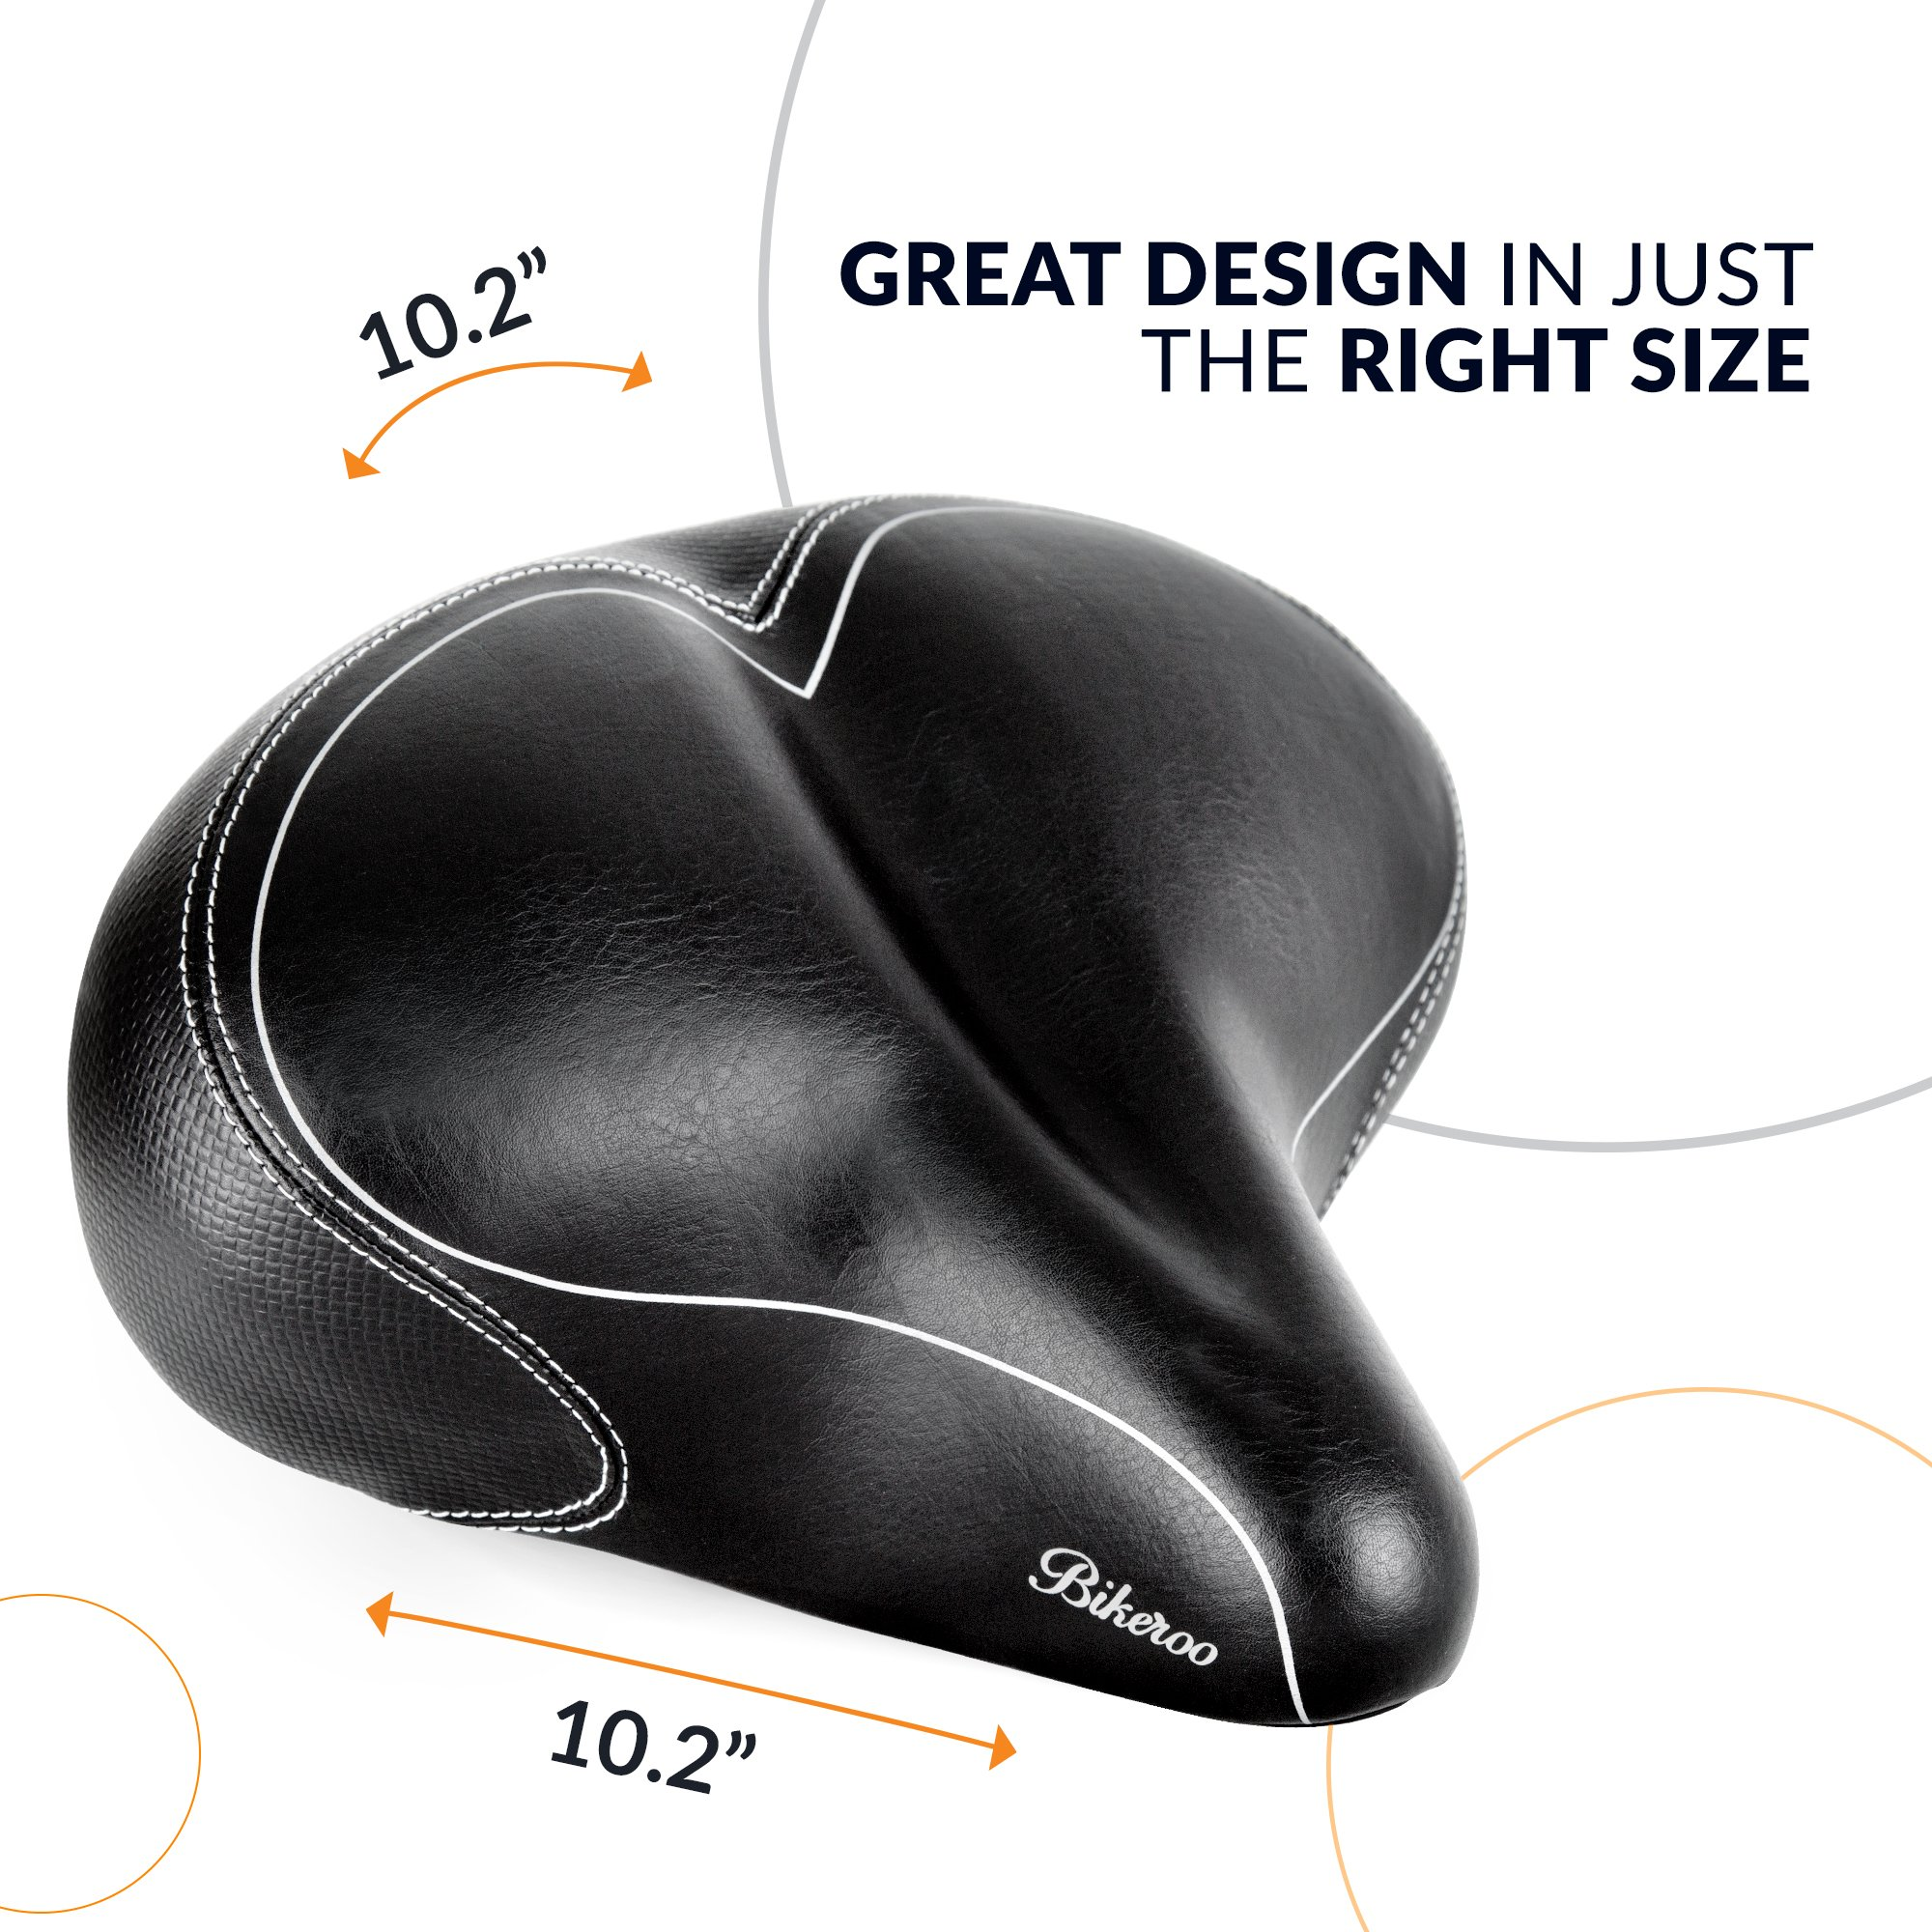 Bikeroo Oversized Comfort Bike Seat Most Comfortable Replacement Bicycle Saddle - Universal Fit for Exercise Bike and Outdoor Bikes - Wide Soft Padded Bike Saddle for Women and Men by Bikeroo (Image #5)